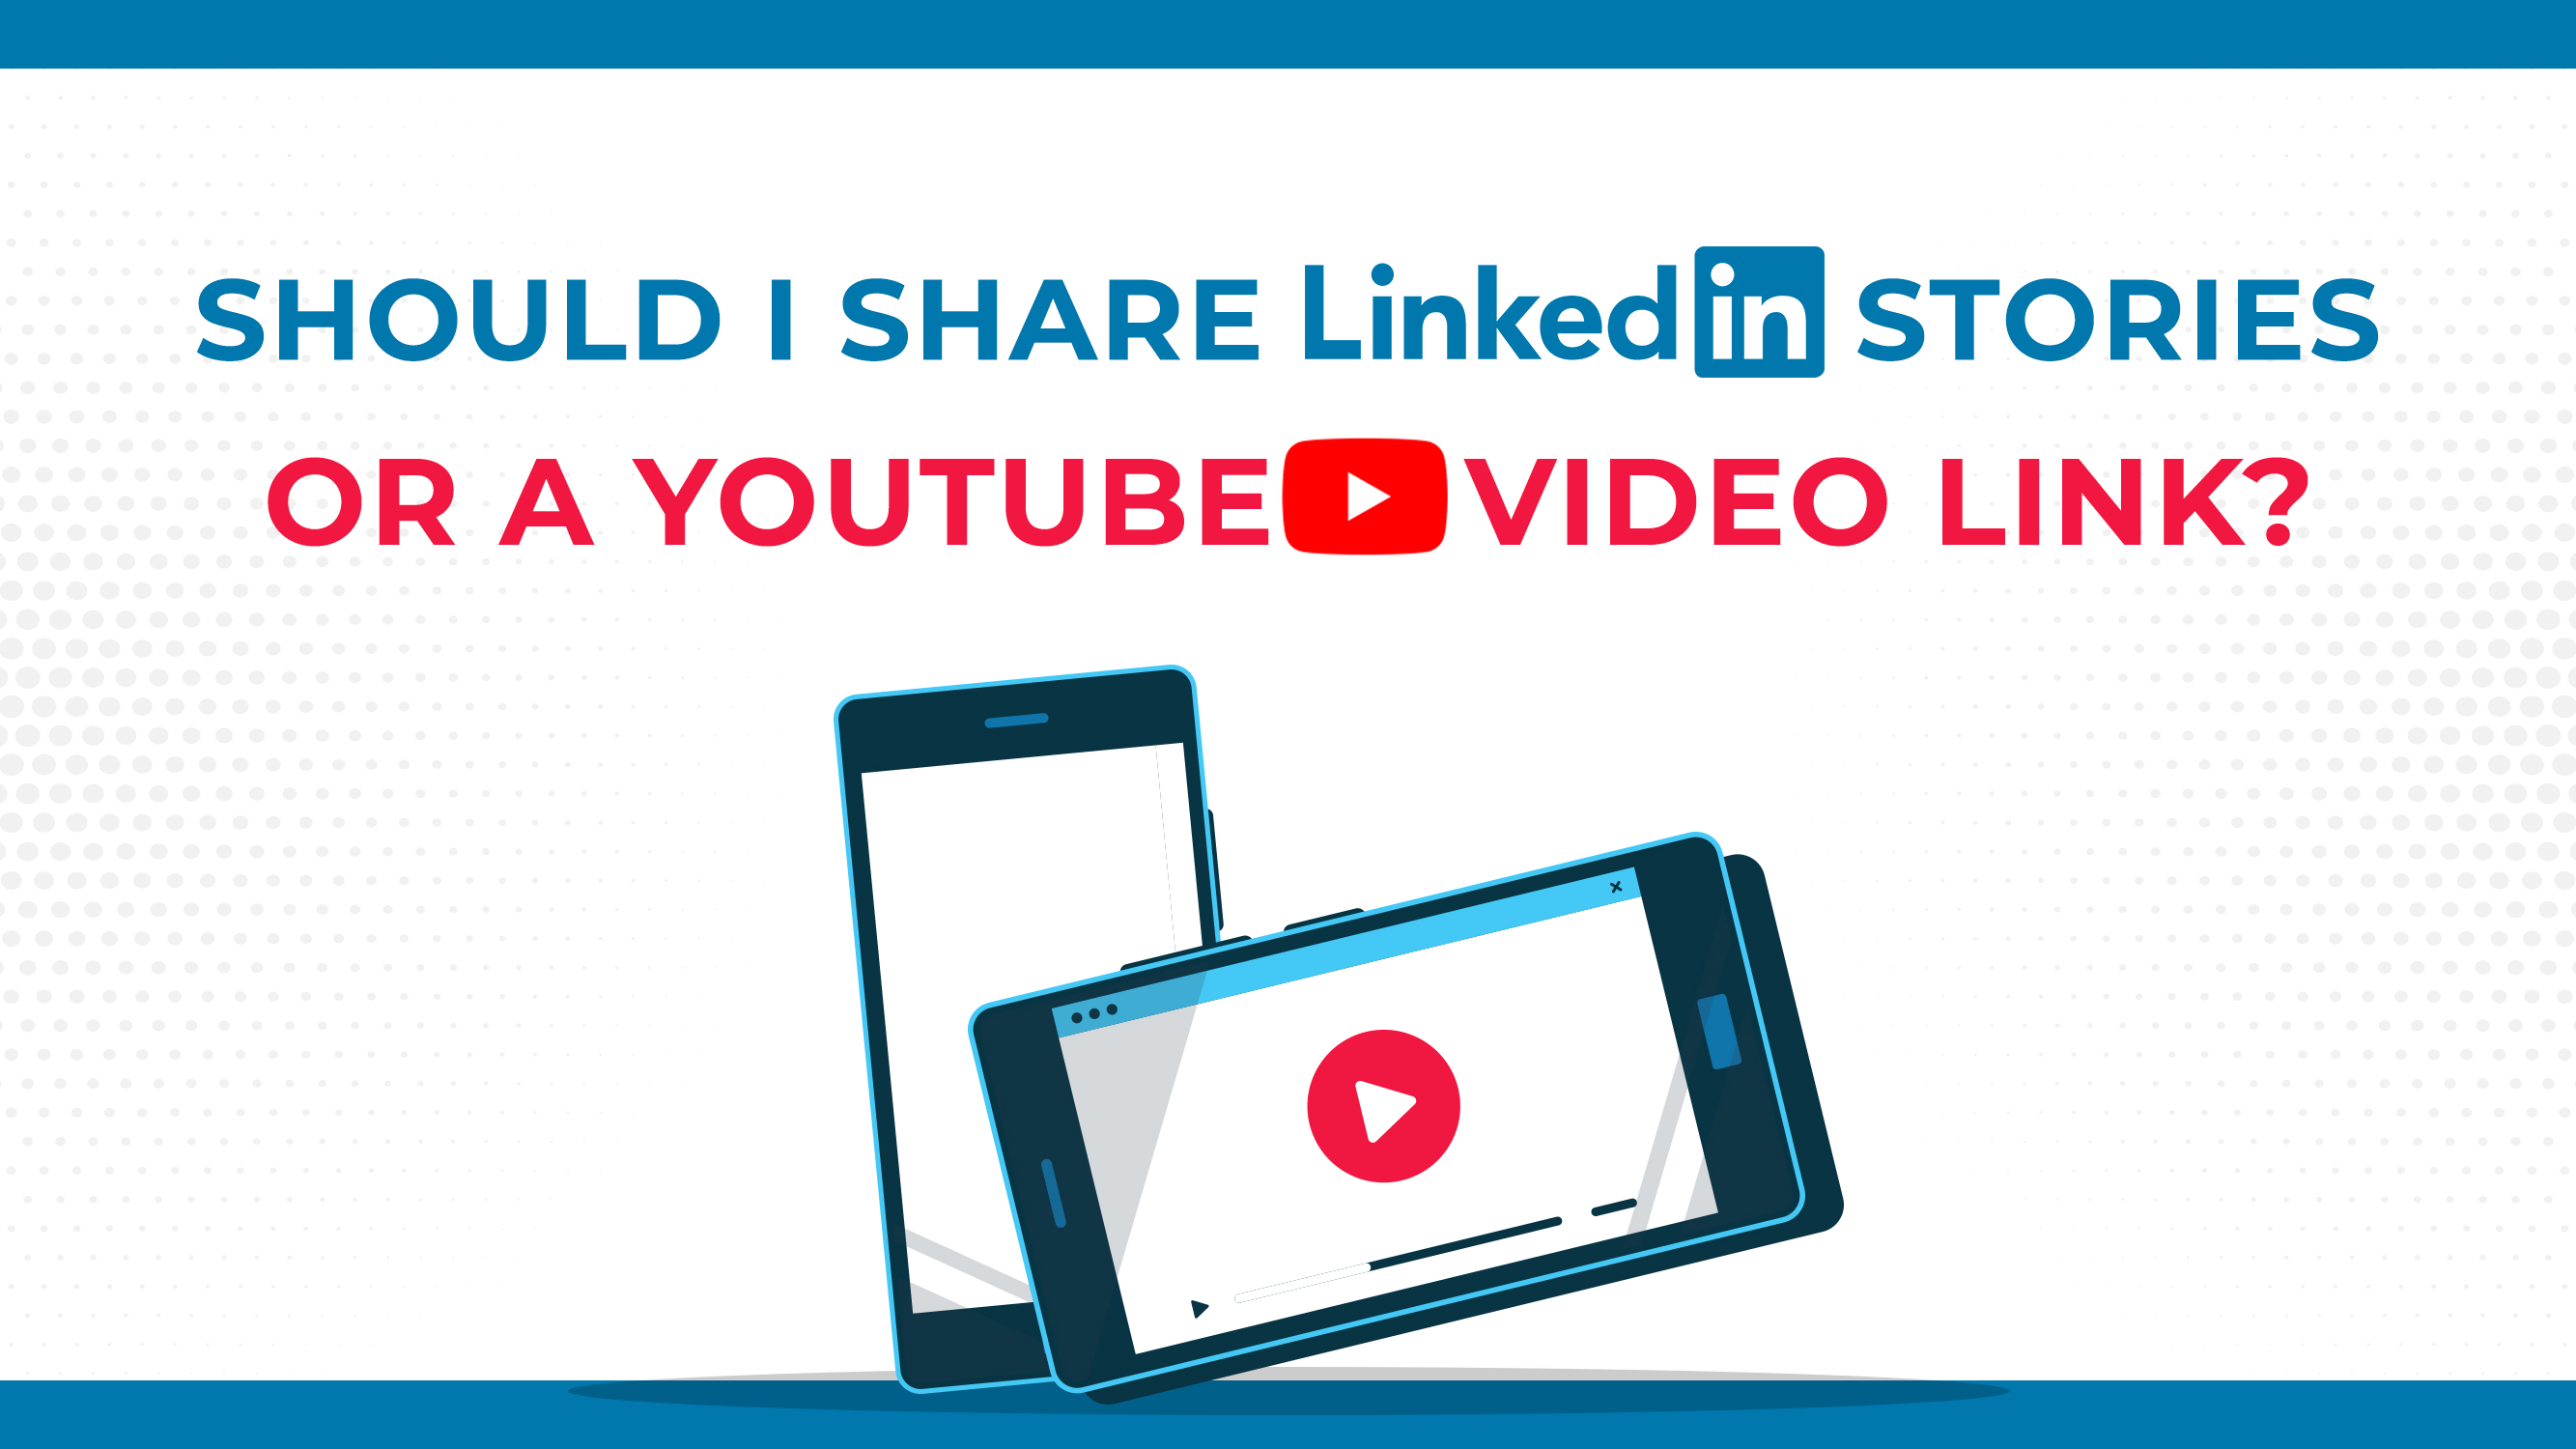 Should I Share LinkedIn Stories Or A YouTube Video Link?